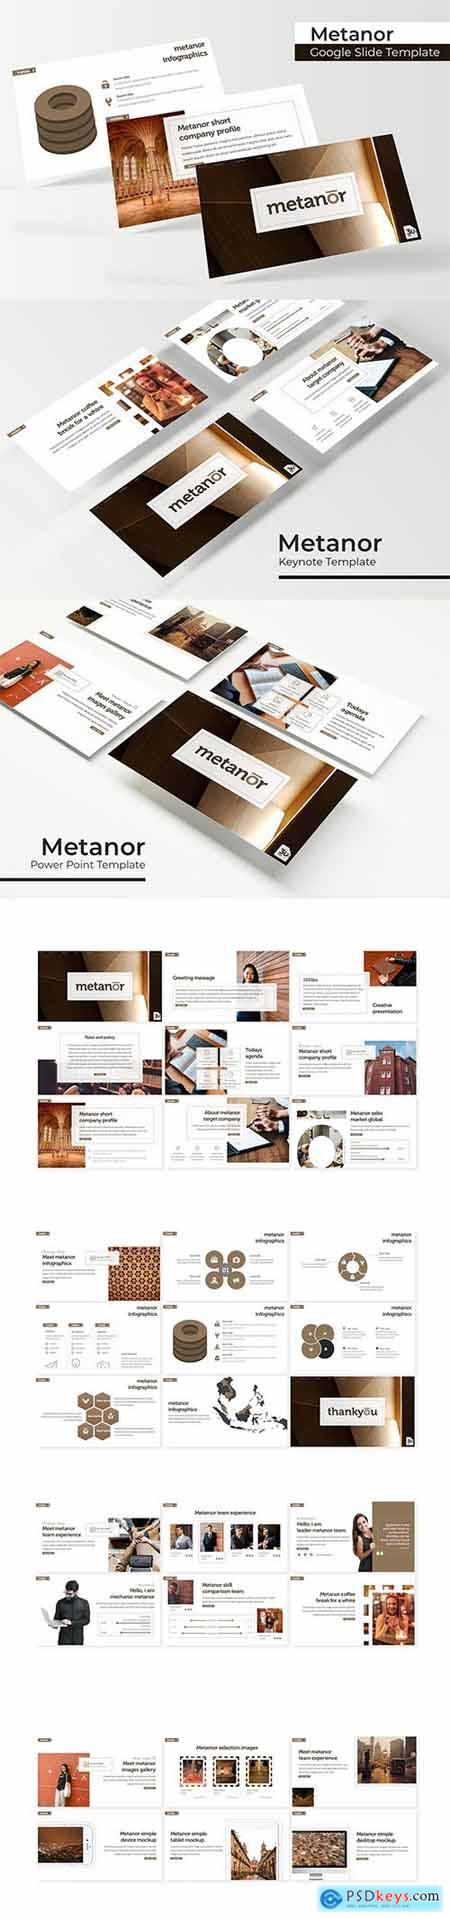 Metanor - Powerpoint, Keynote and Google Slides Templates